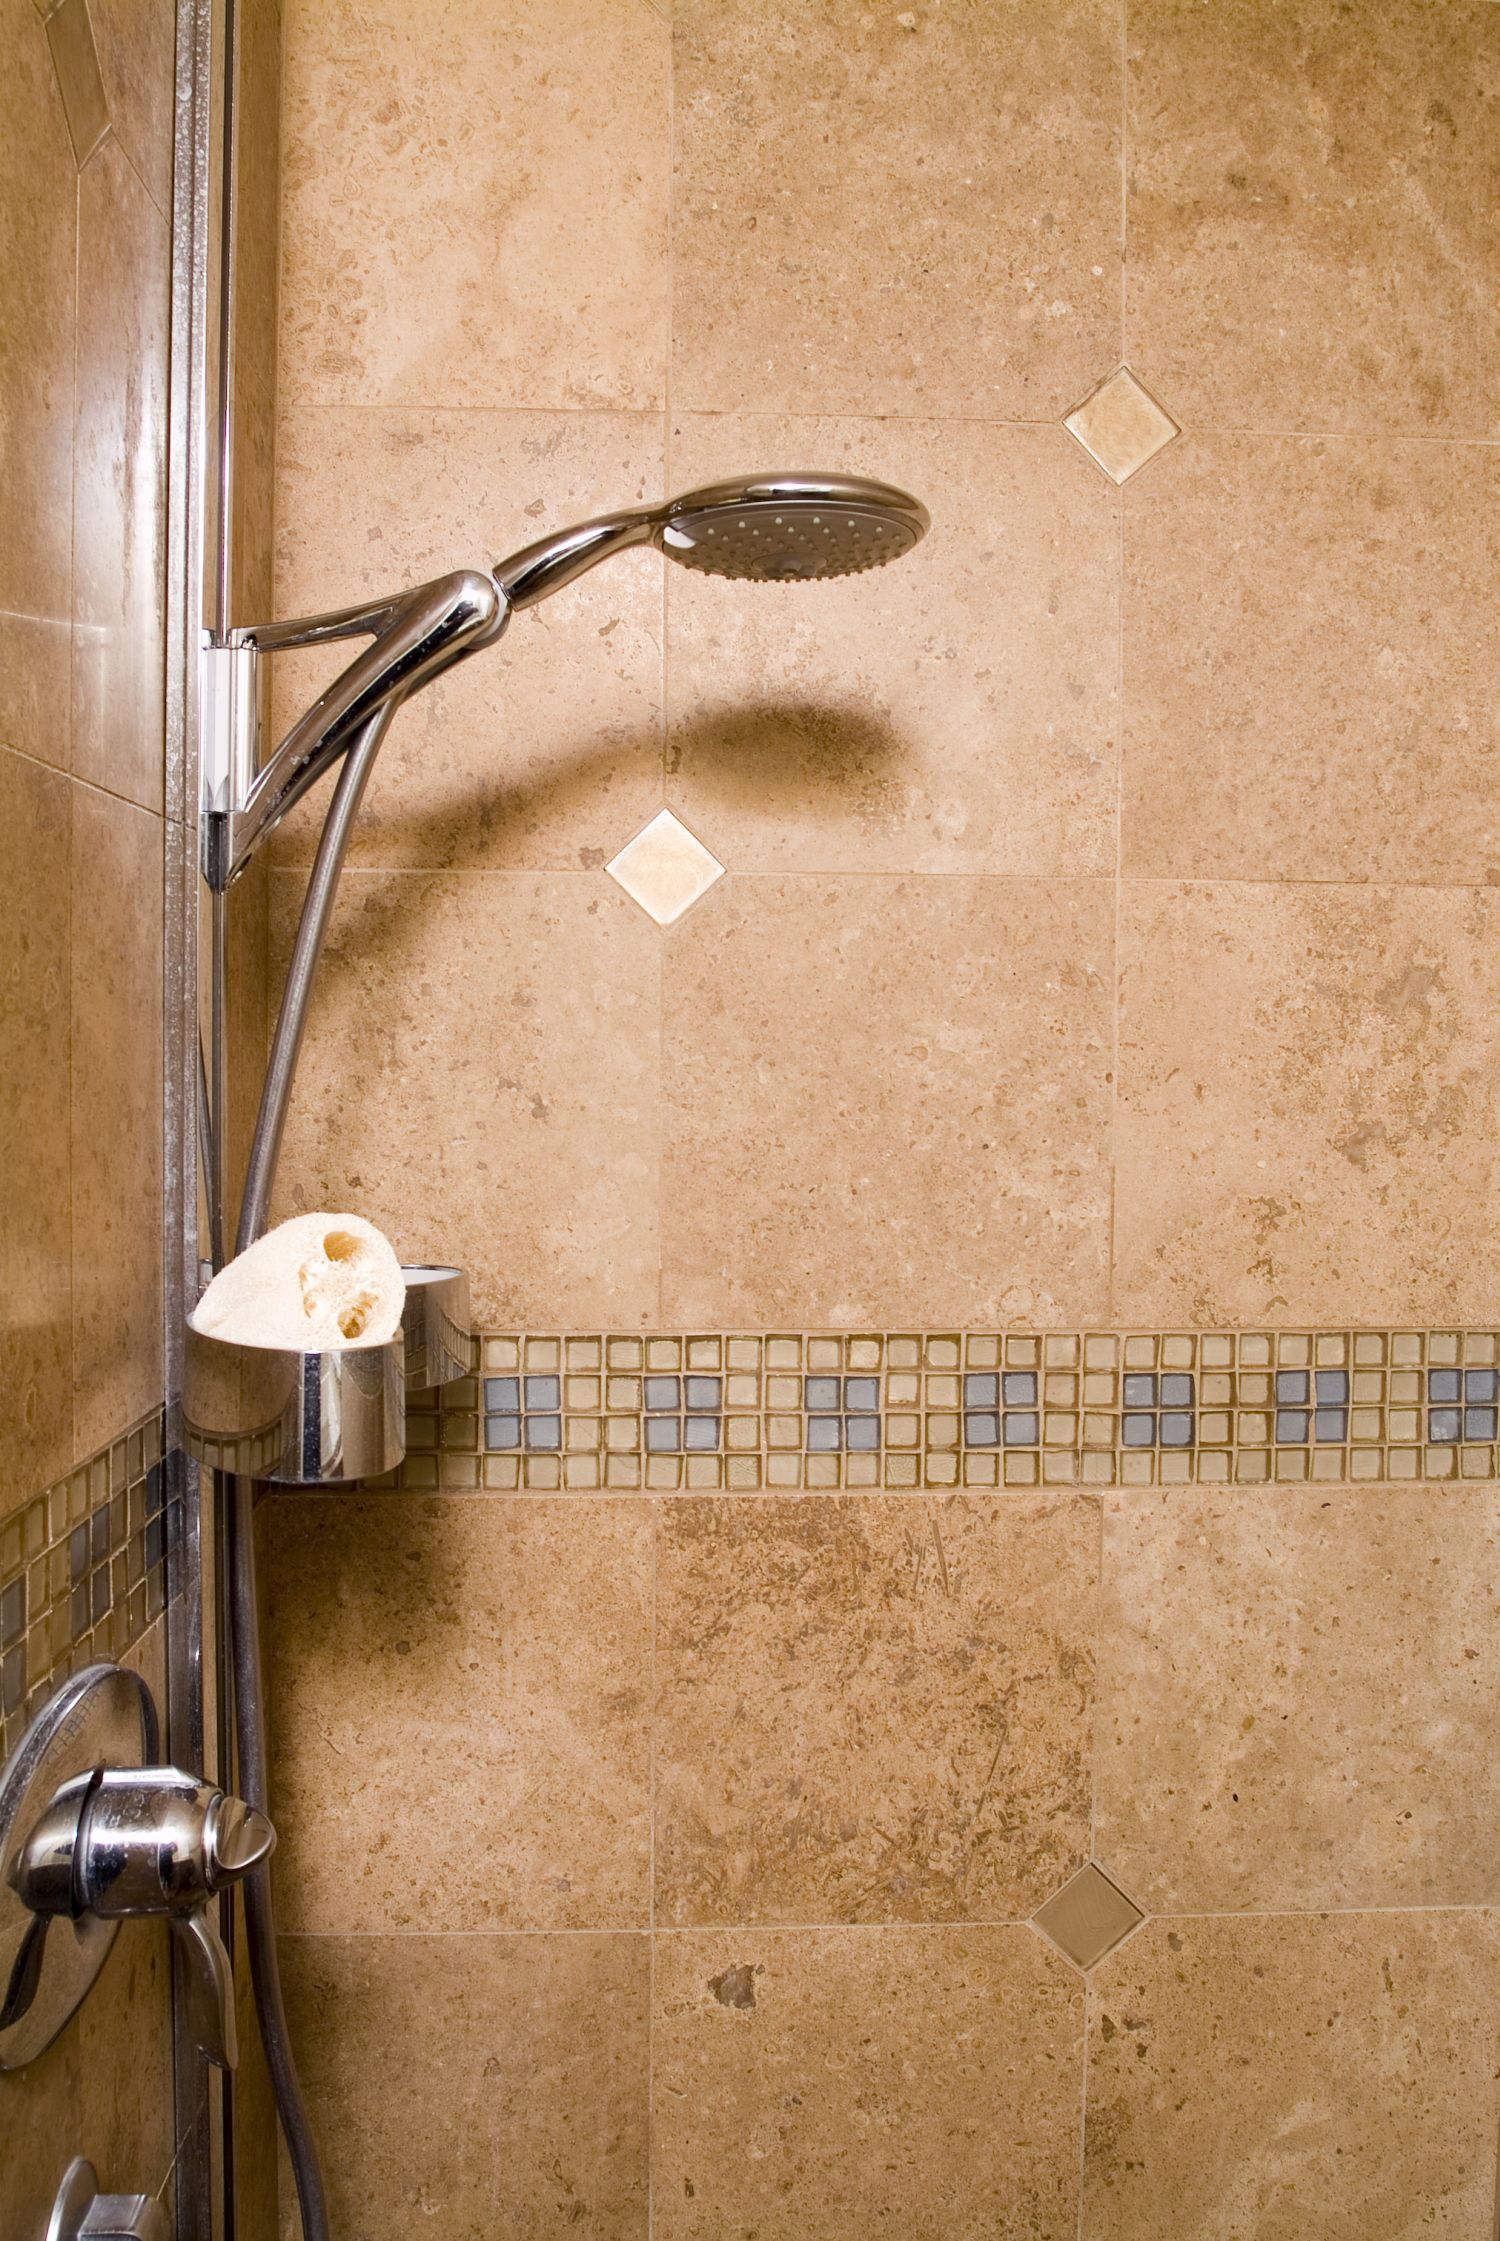 A showerhead and handshower in one